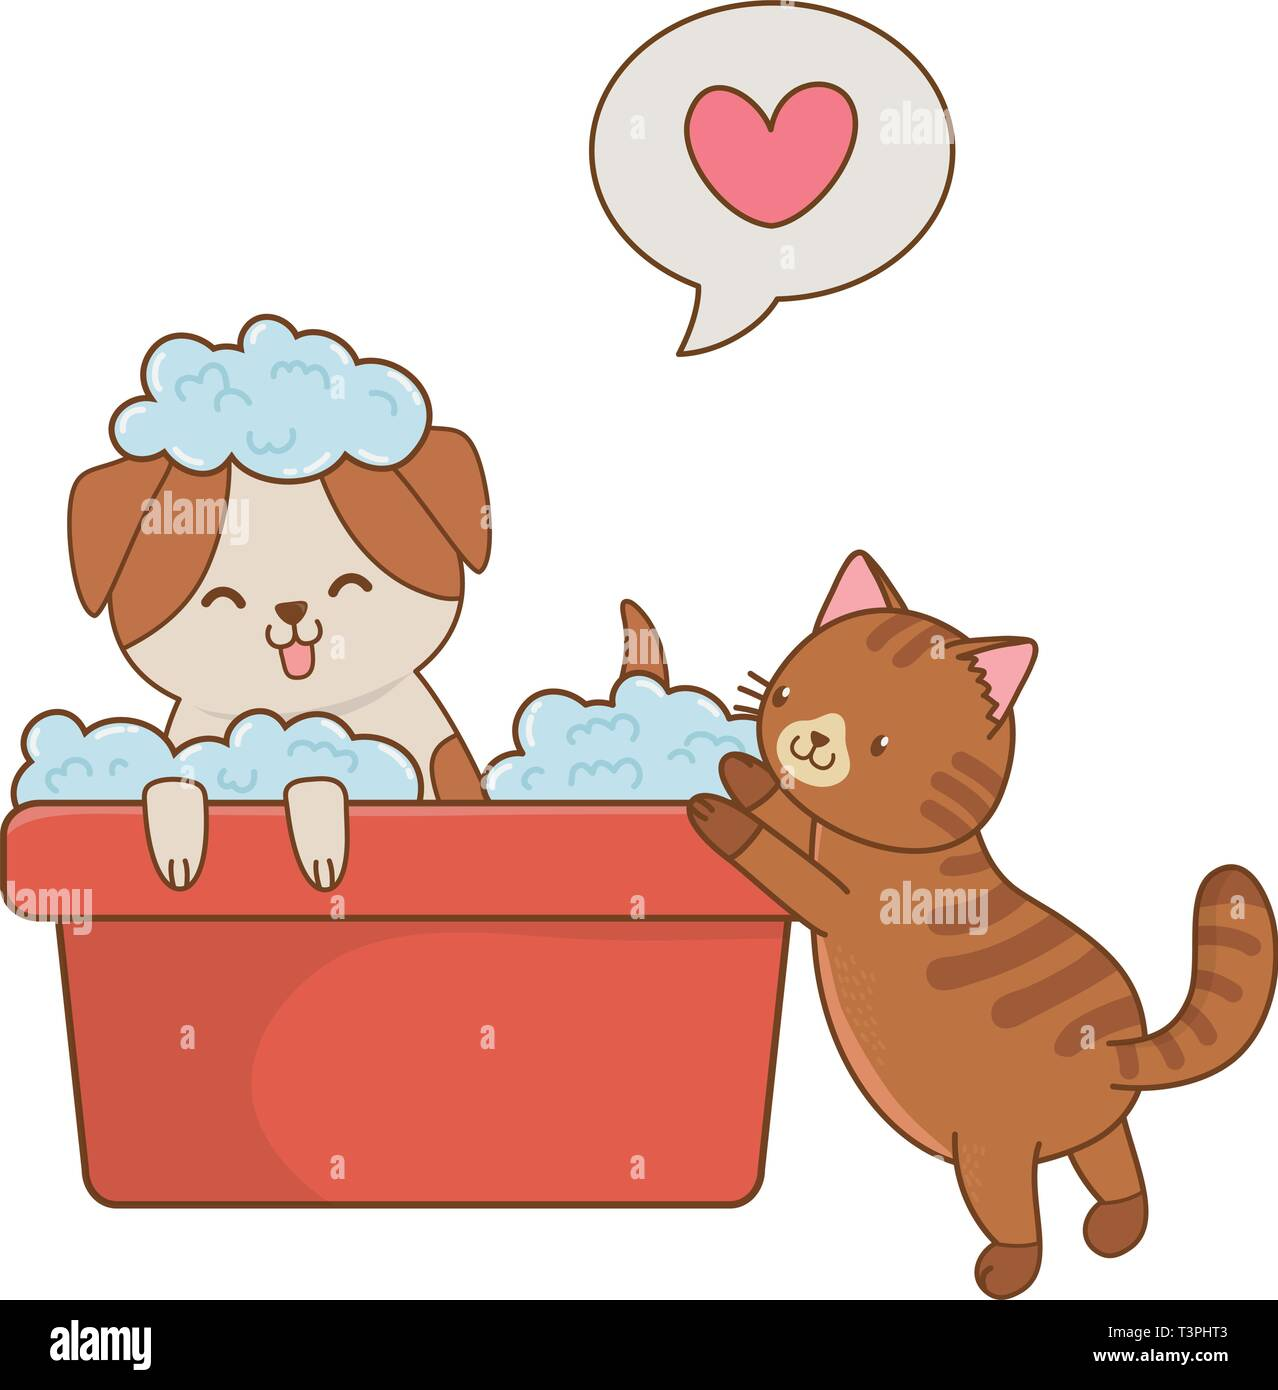 Cute Funny Pets Dog And Cat Taking A Shower Cartoon Vector Illustration Graphic Design Stock Vector Image Art Alamy